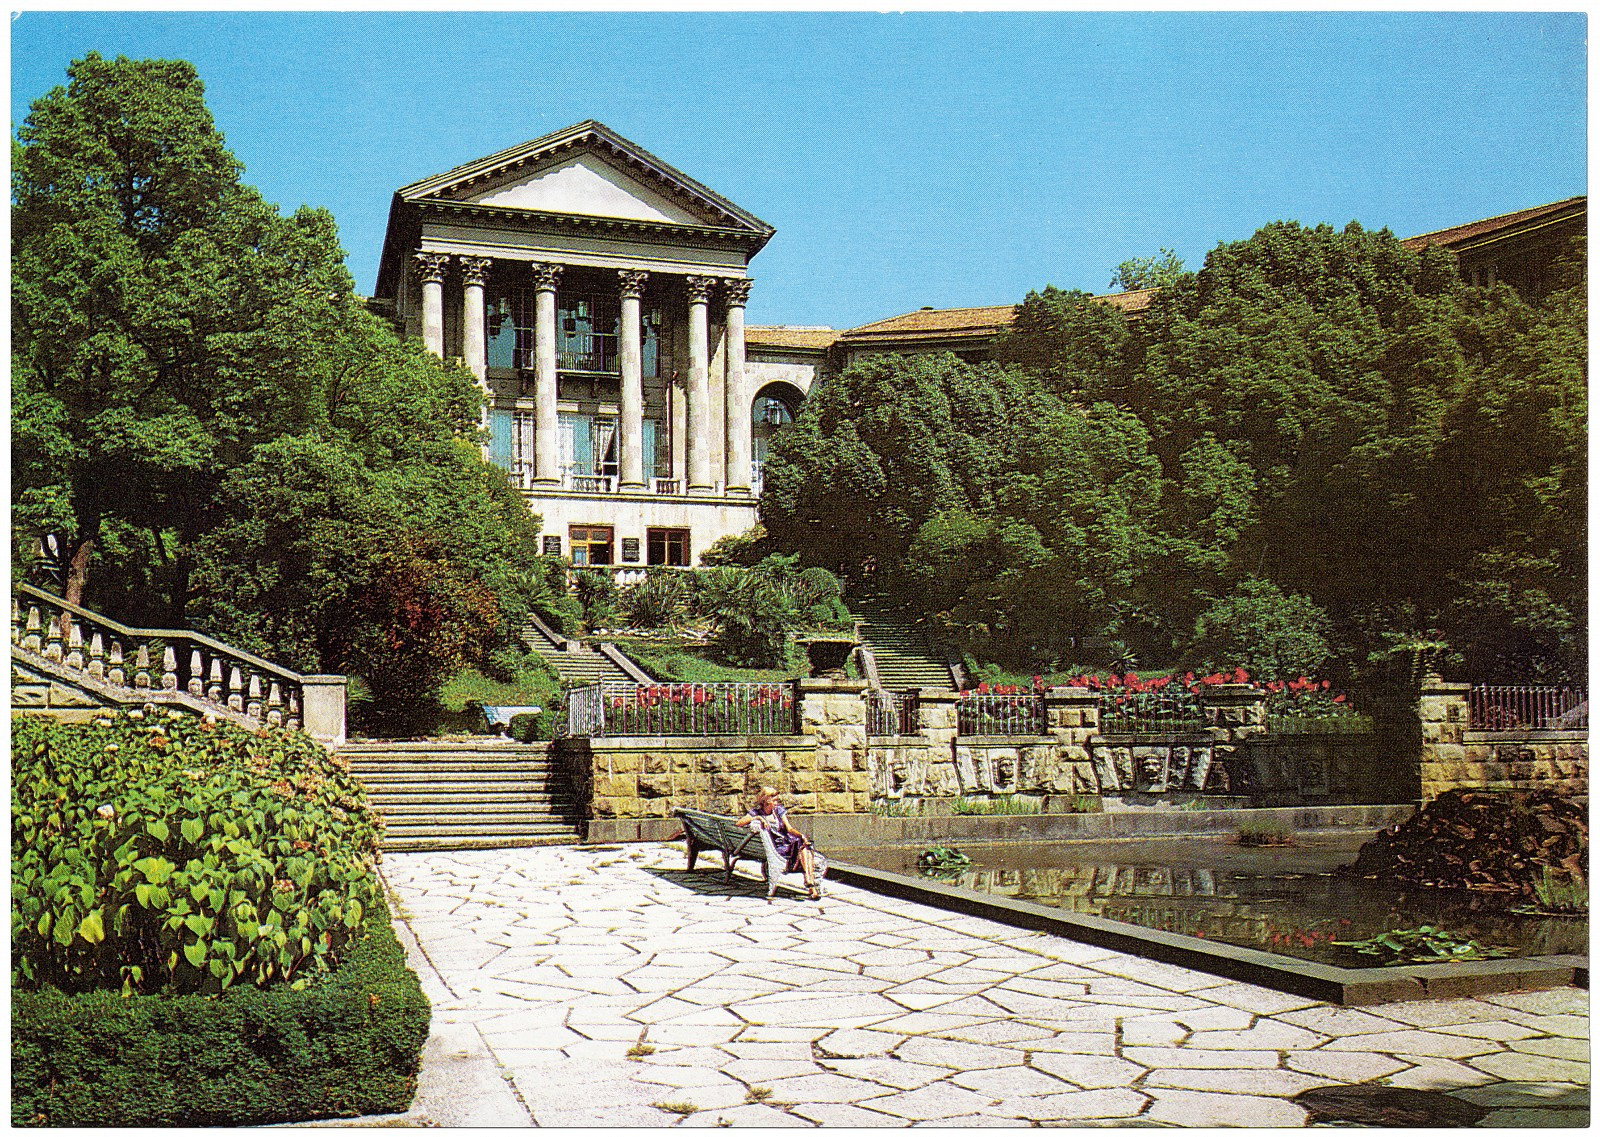 Metallurg, on Kurortny Prospekt, is one of Sochi's most famous sanatoria. Built to accommodate metalworkers, it is located next to the enormous Red Army sanatorium and Ordzhonikidze, the sanatorium for miners. Postcard of Sochi, Russia, 1980s.